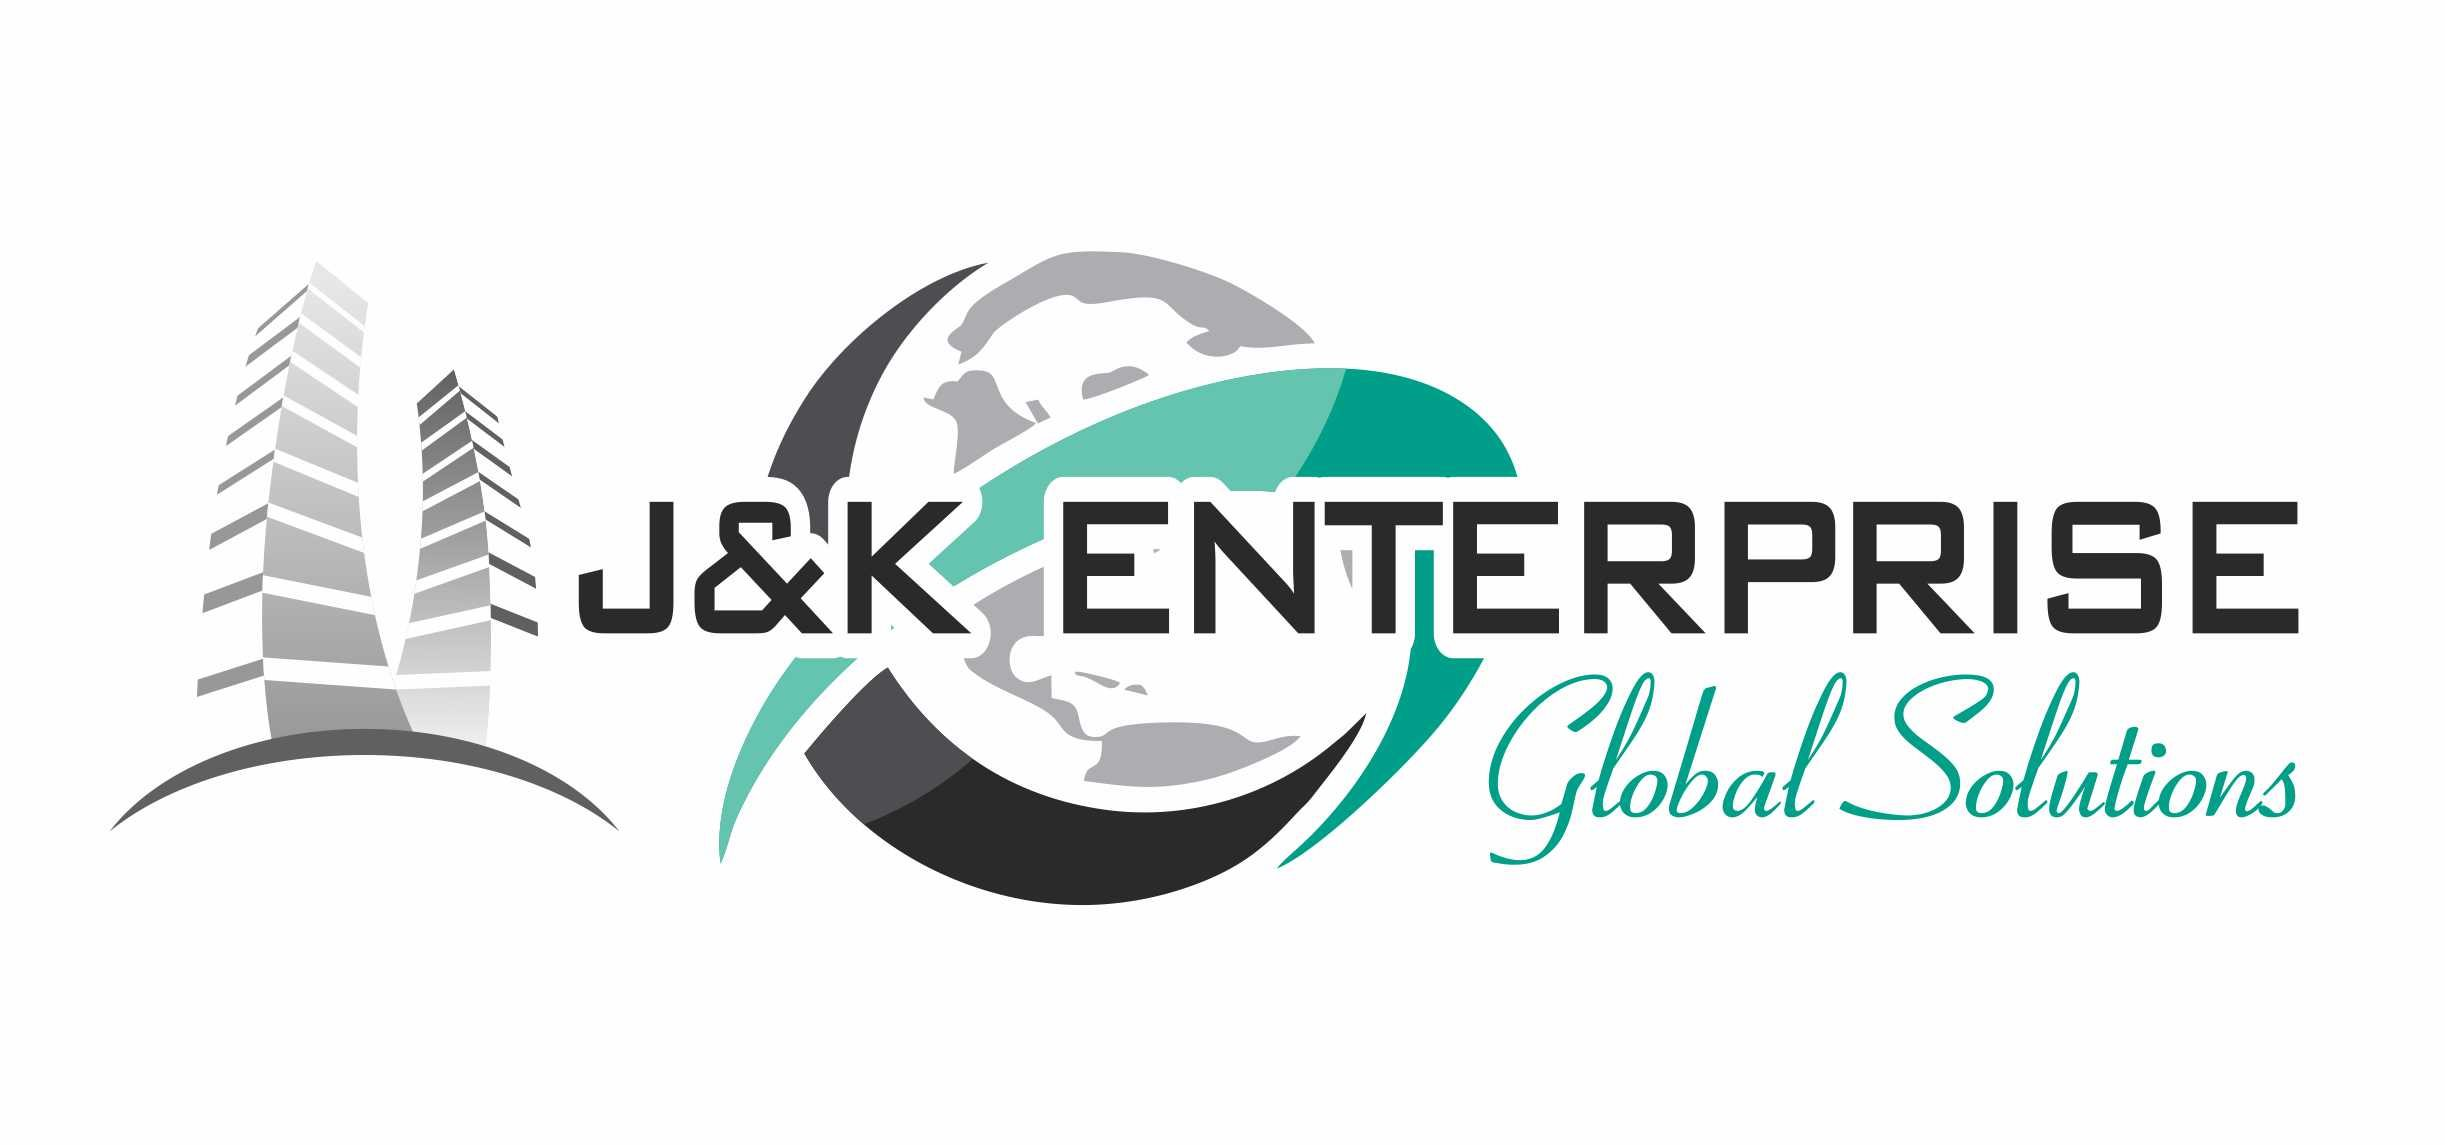 J&K ENTERPRISE